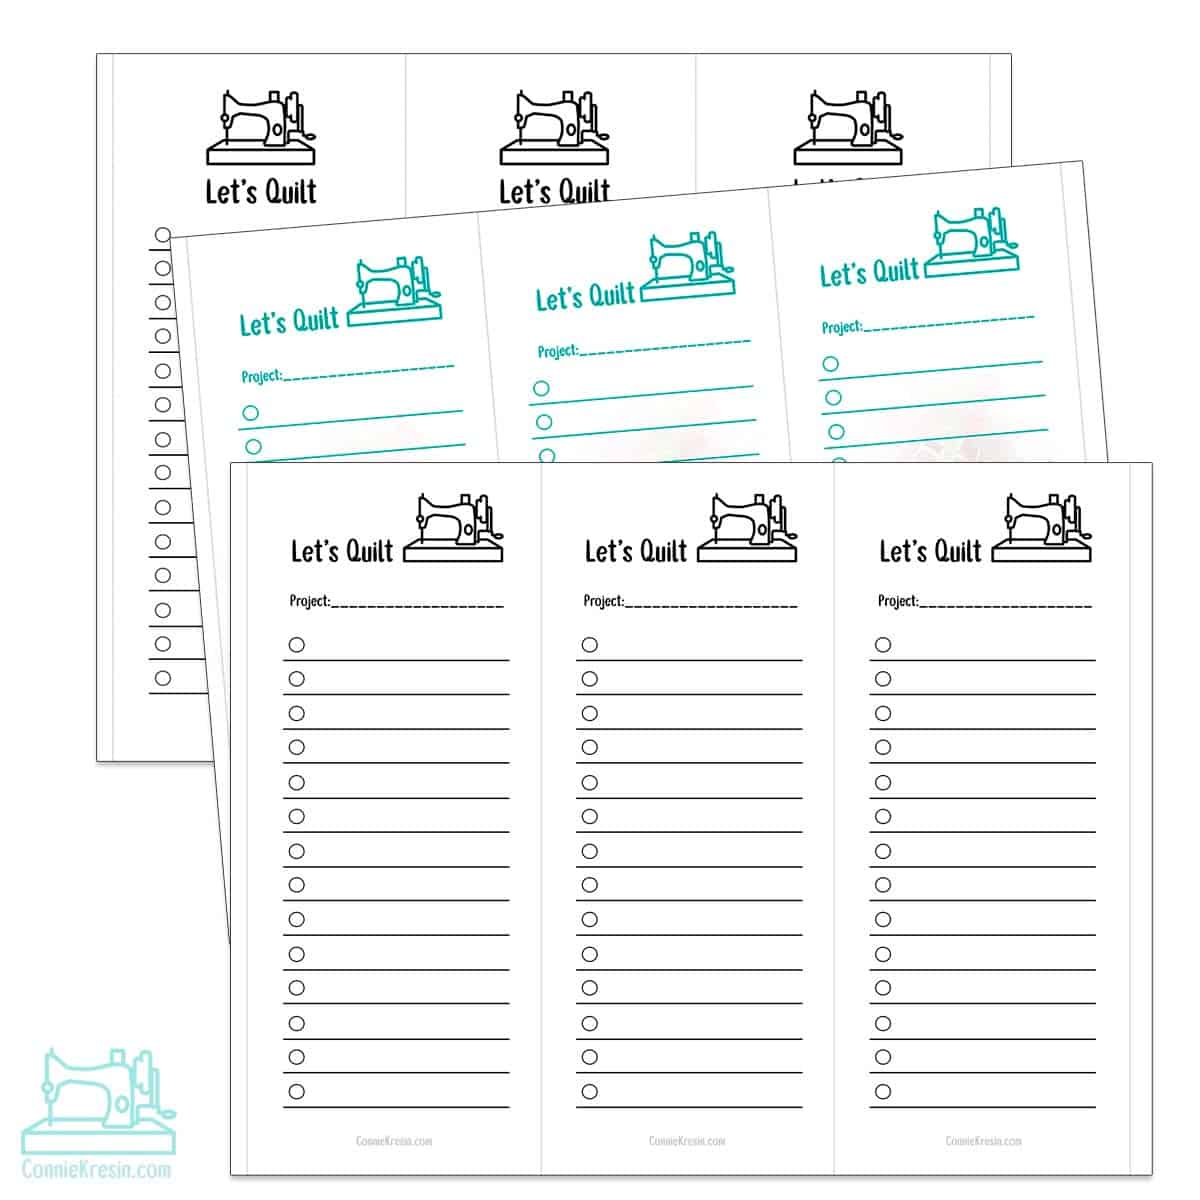 Lets quilt free printable lists